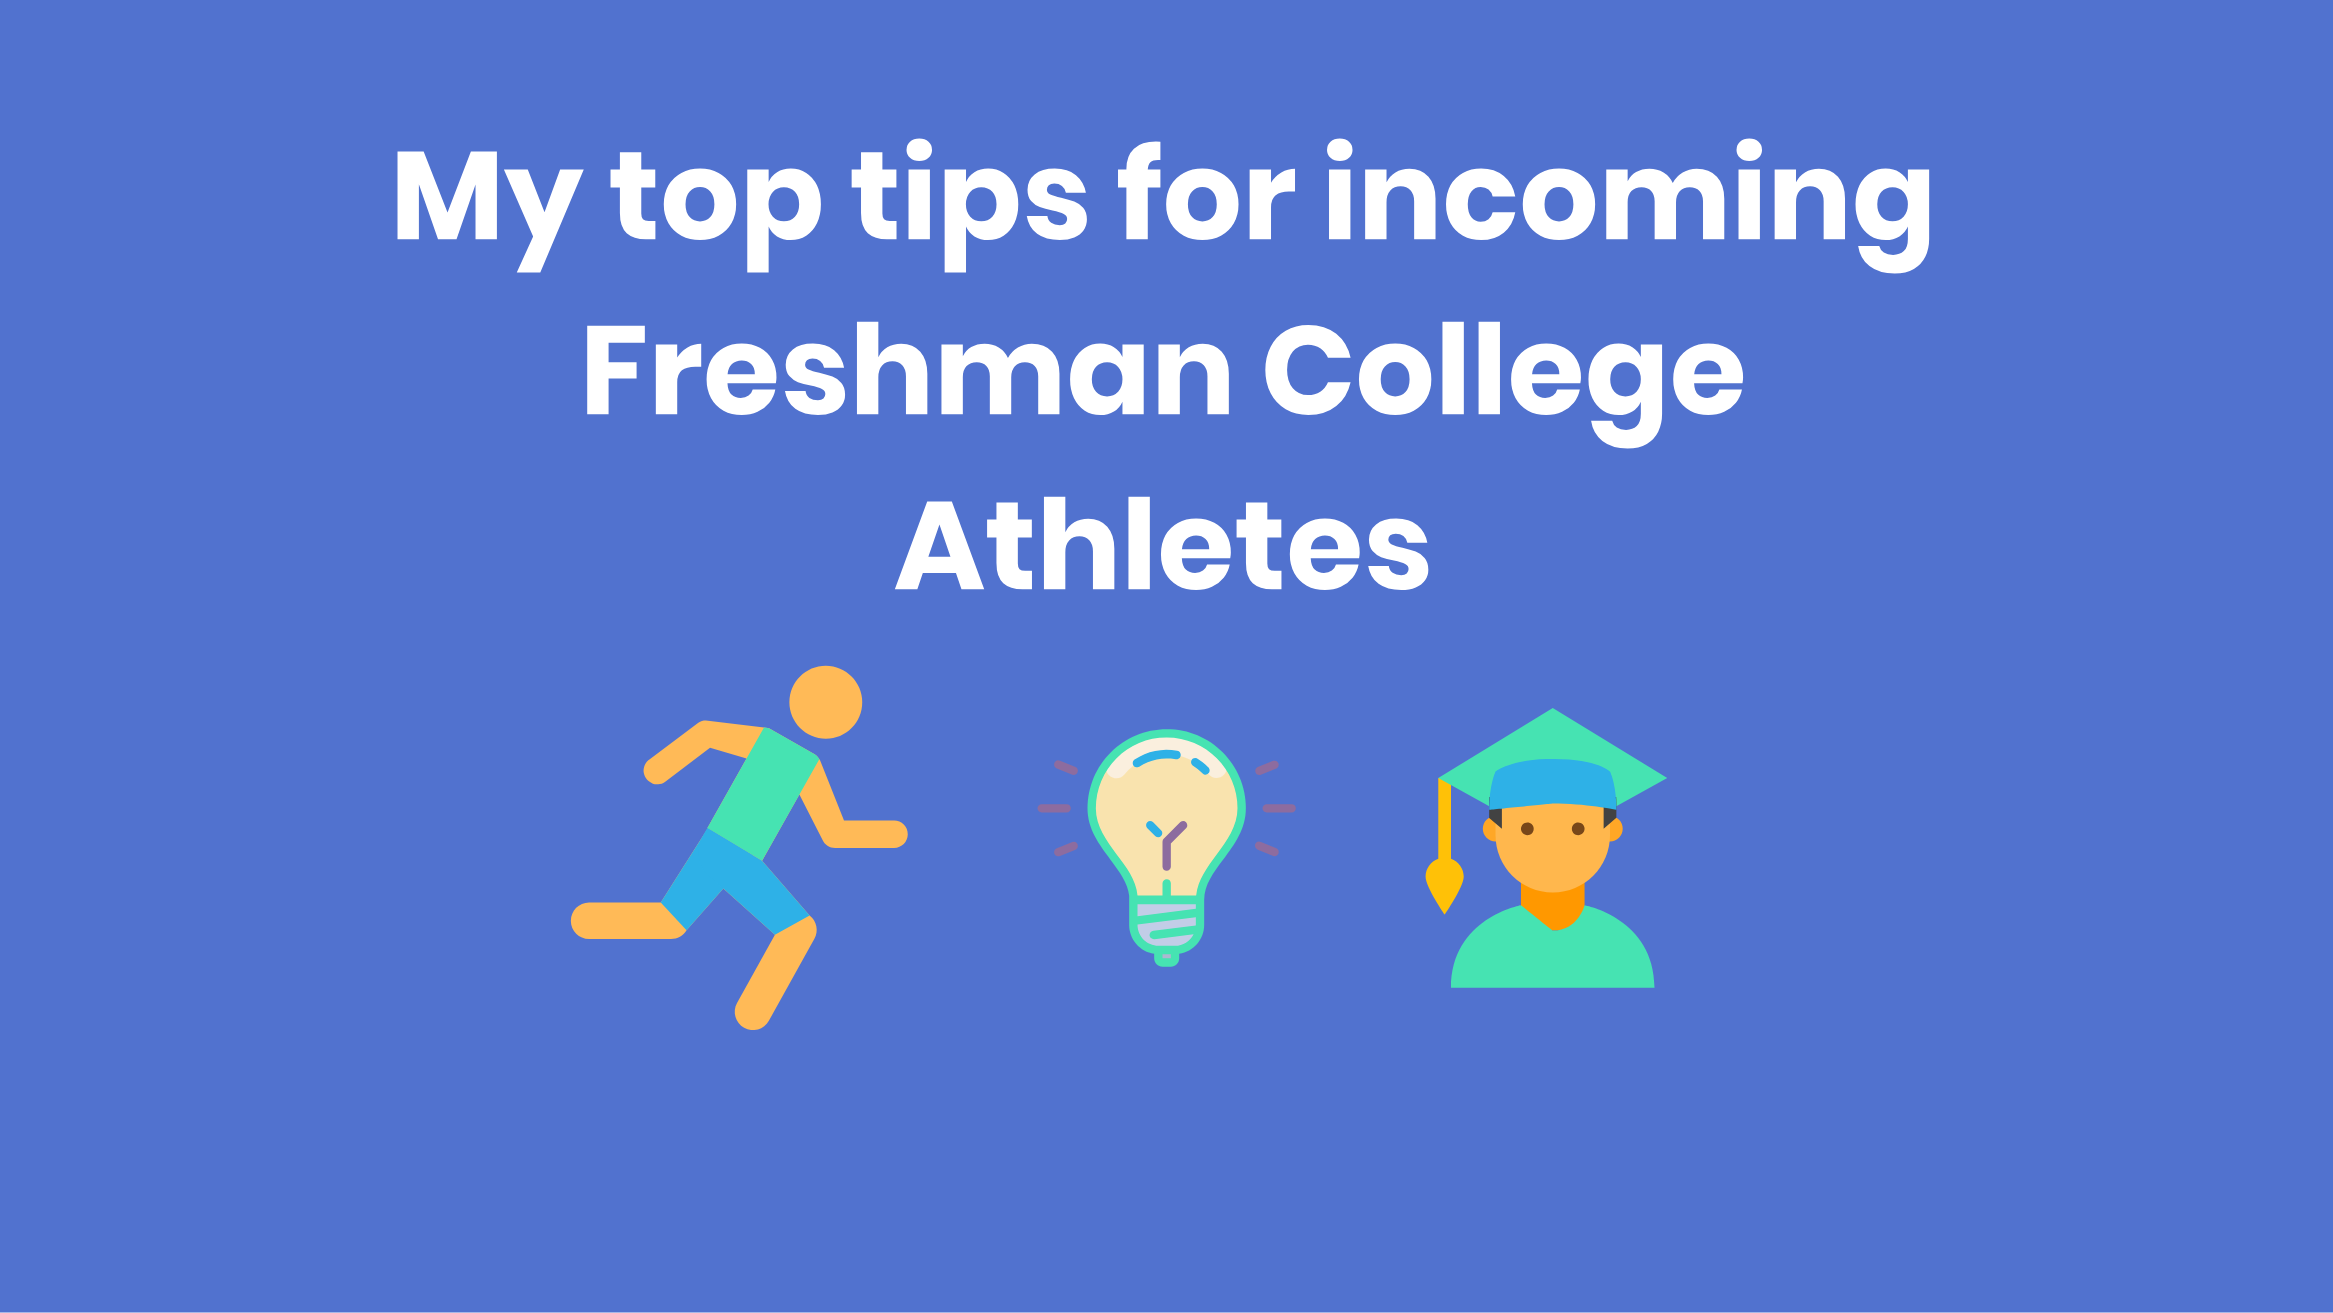 Image for My top tips for incoming Freshman College Athletes